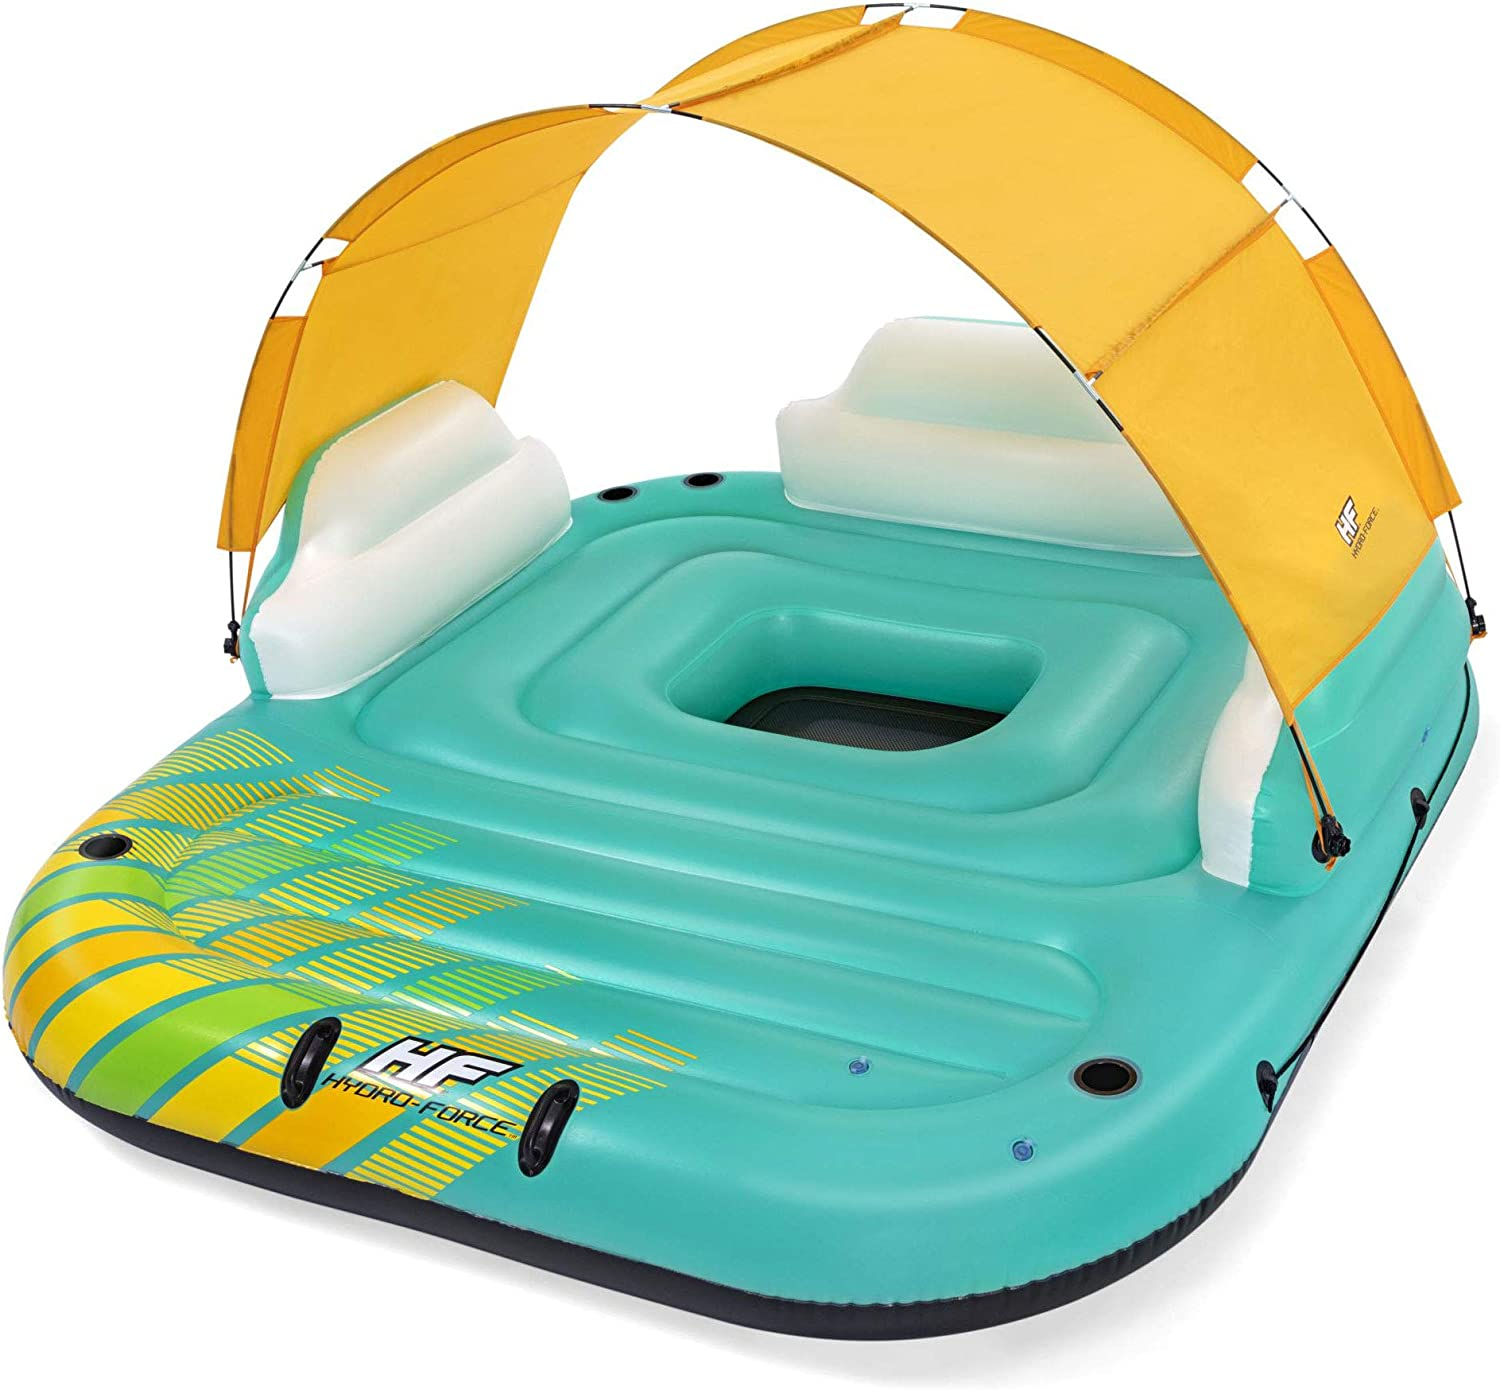 Bestway Hydro Force Sunny 5 Person Inflatable Floating Island Lounge Raft $130  Coupon